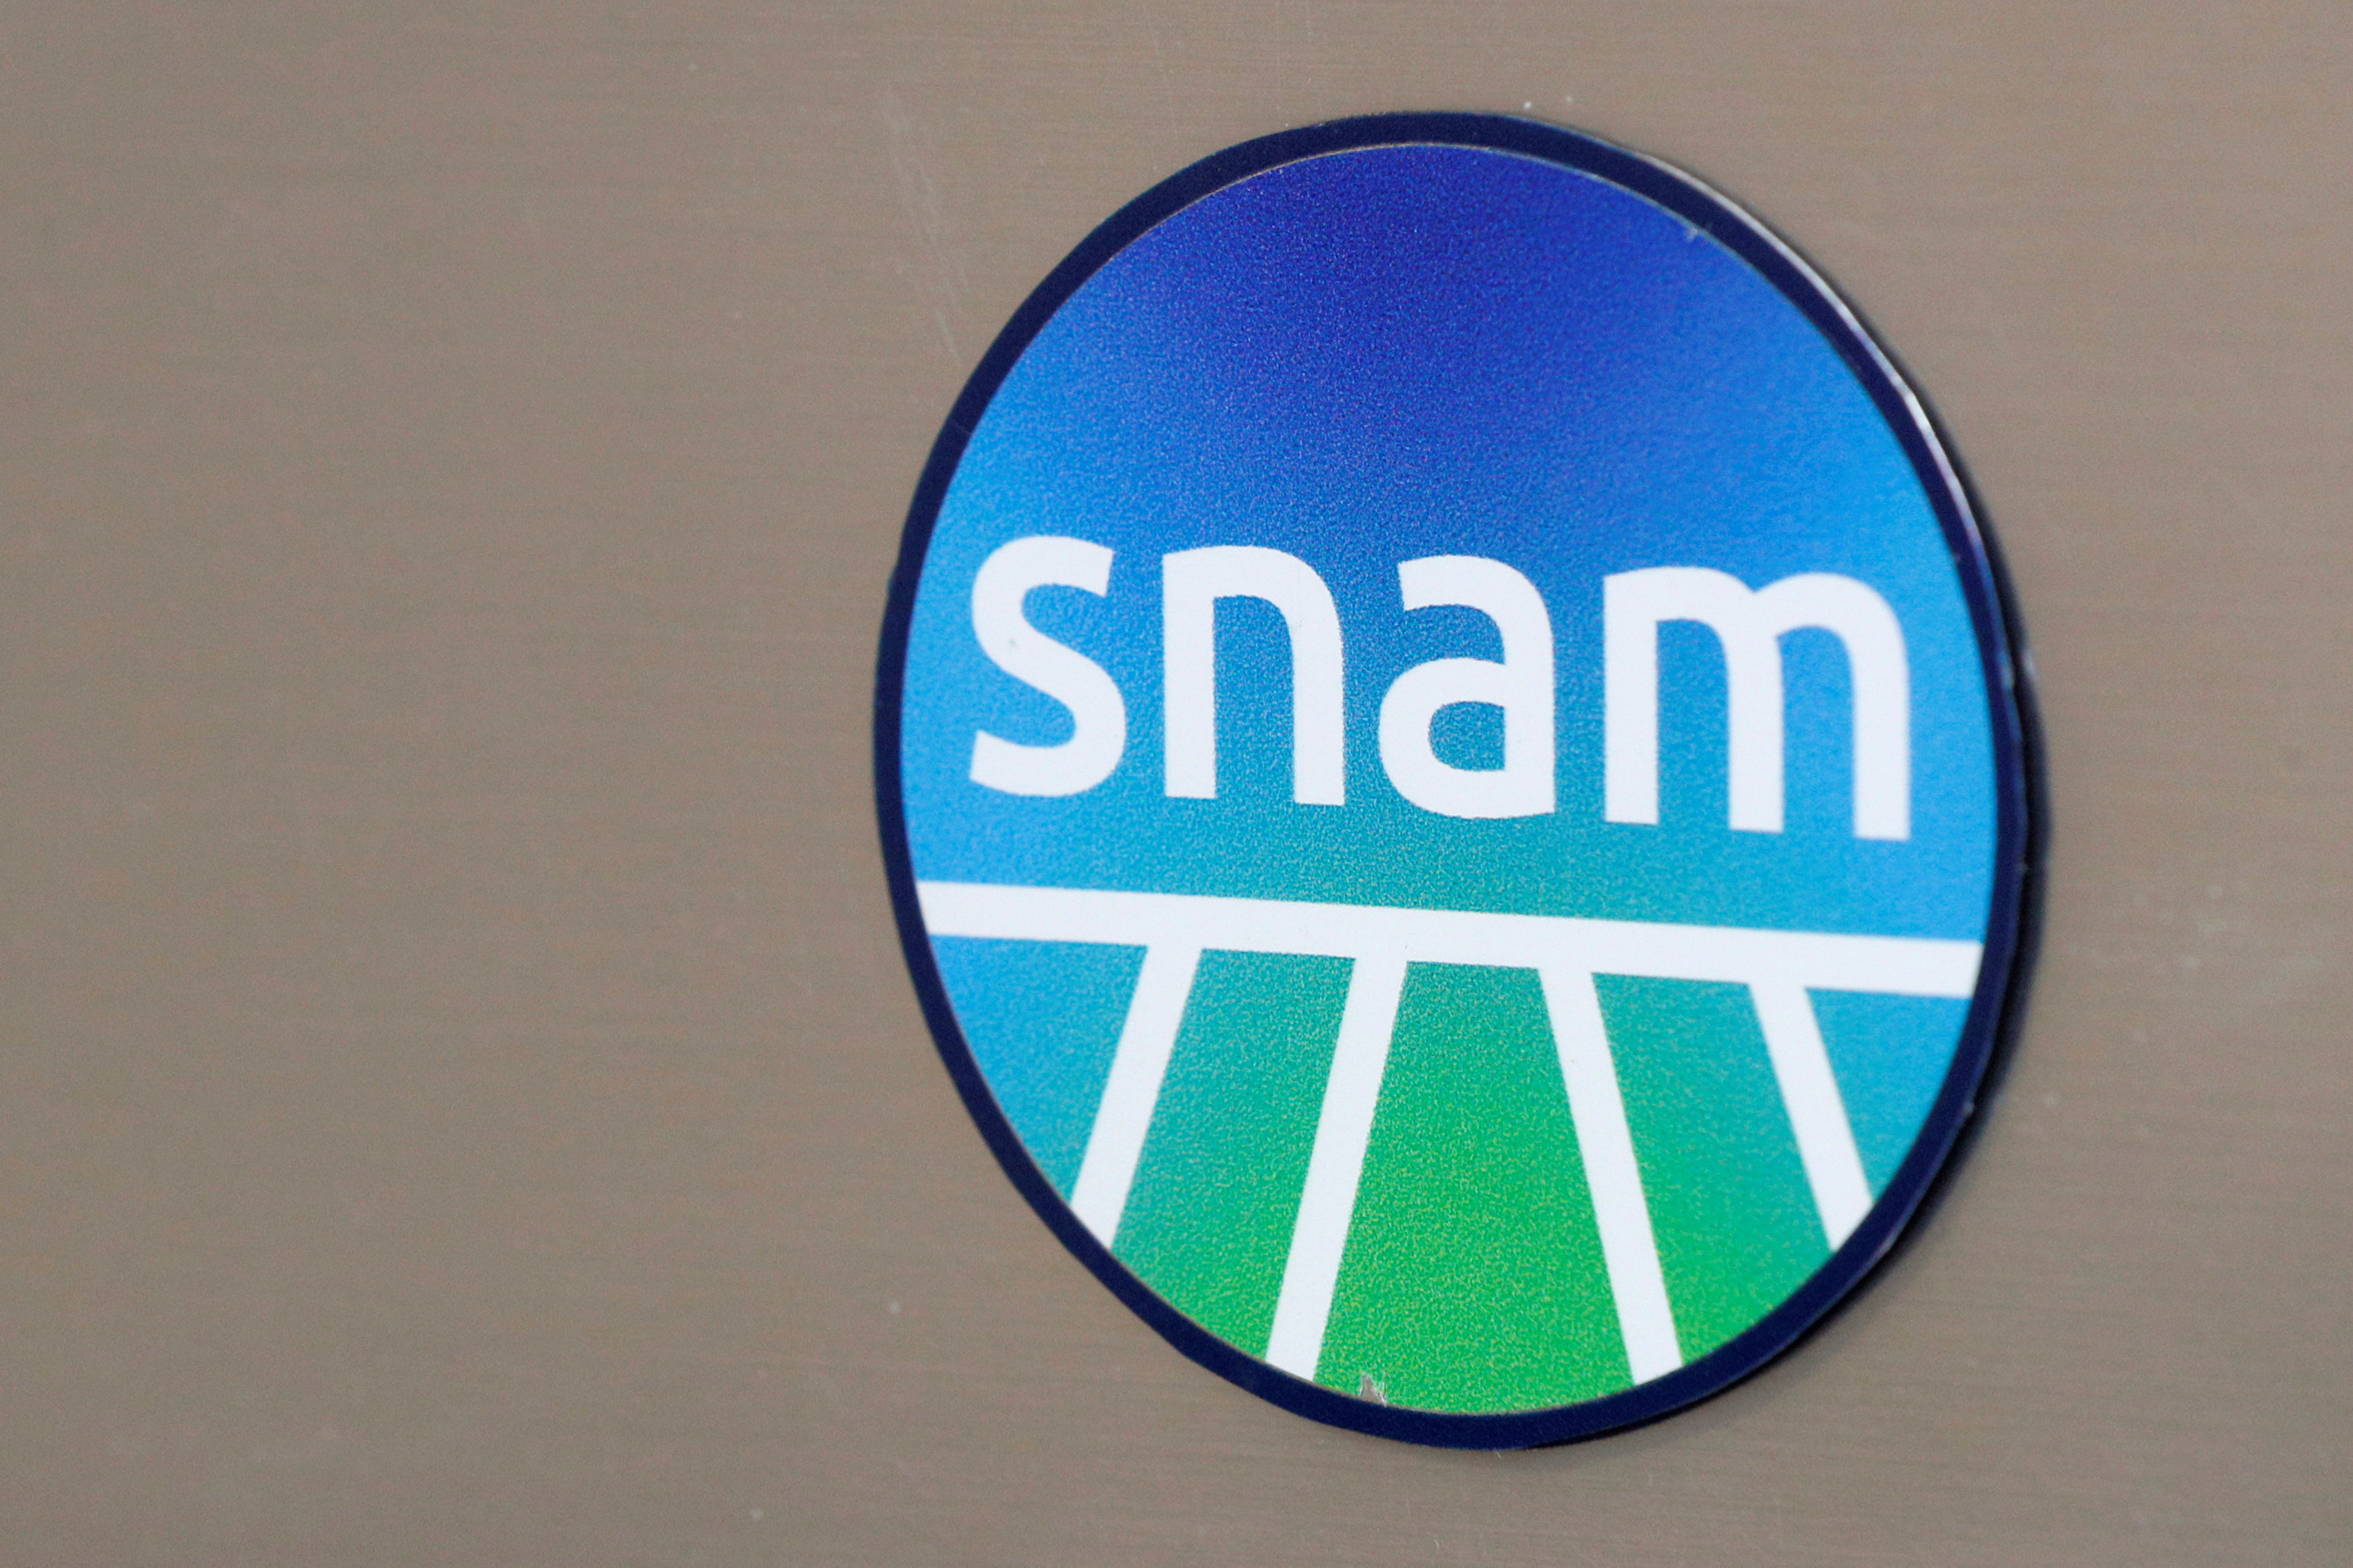 Italian gas group Snam's logo is seen outside its office in Rome, Italy, June 4, 2020. REUTERS/Guglielmo Mangiapane/File Photo